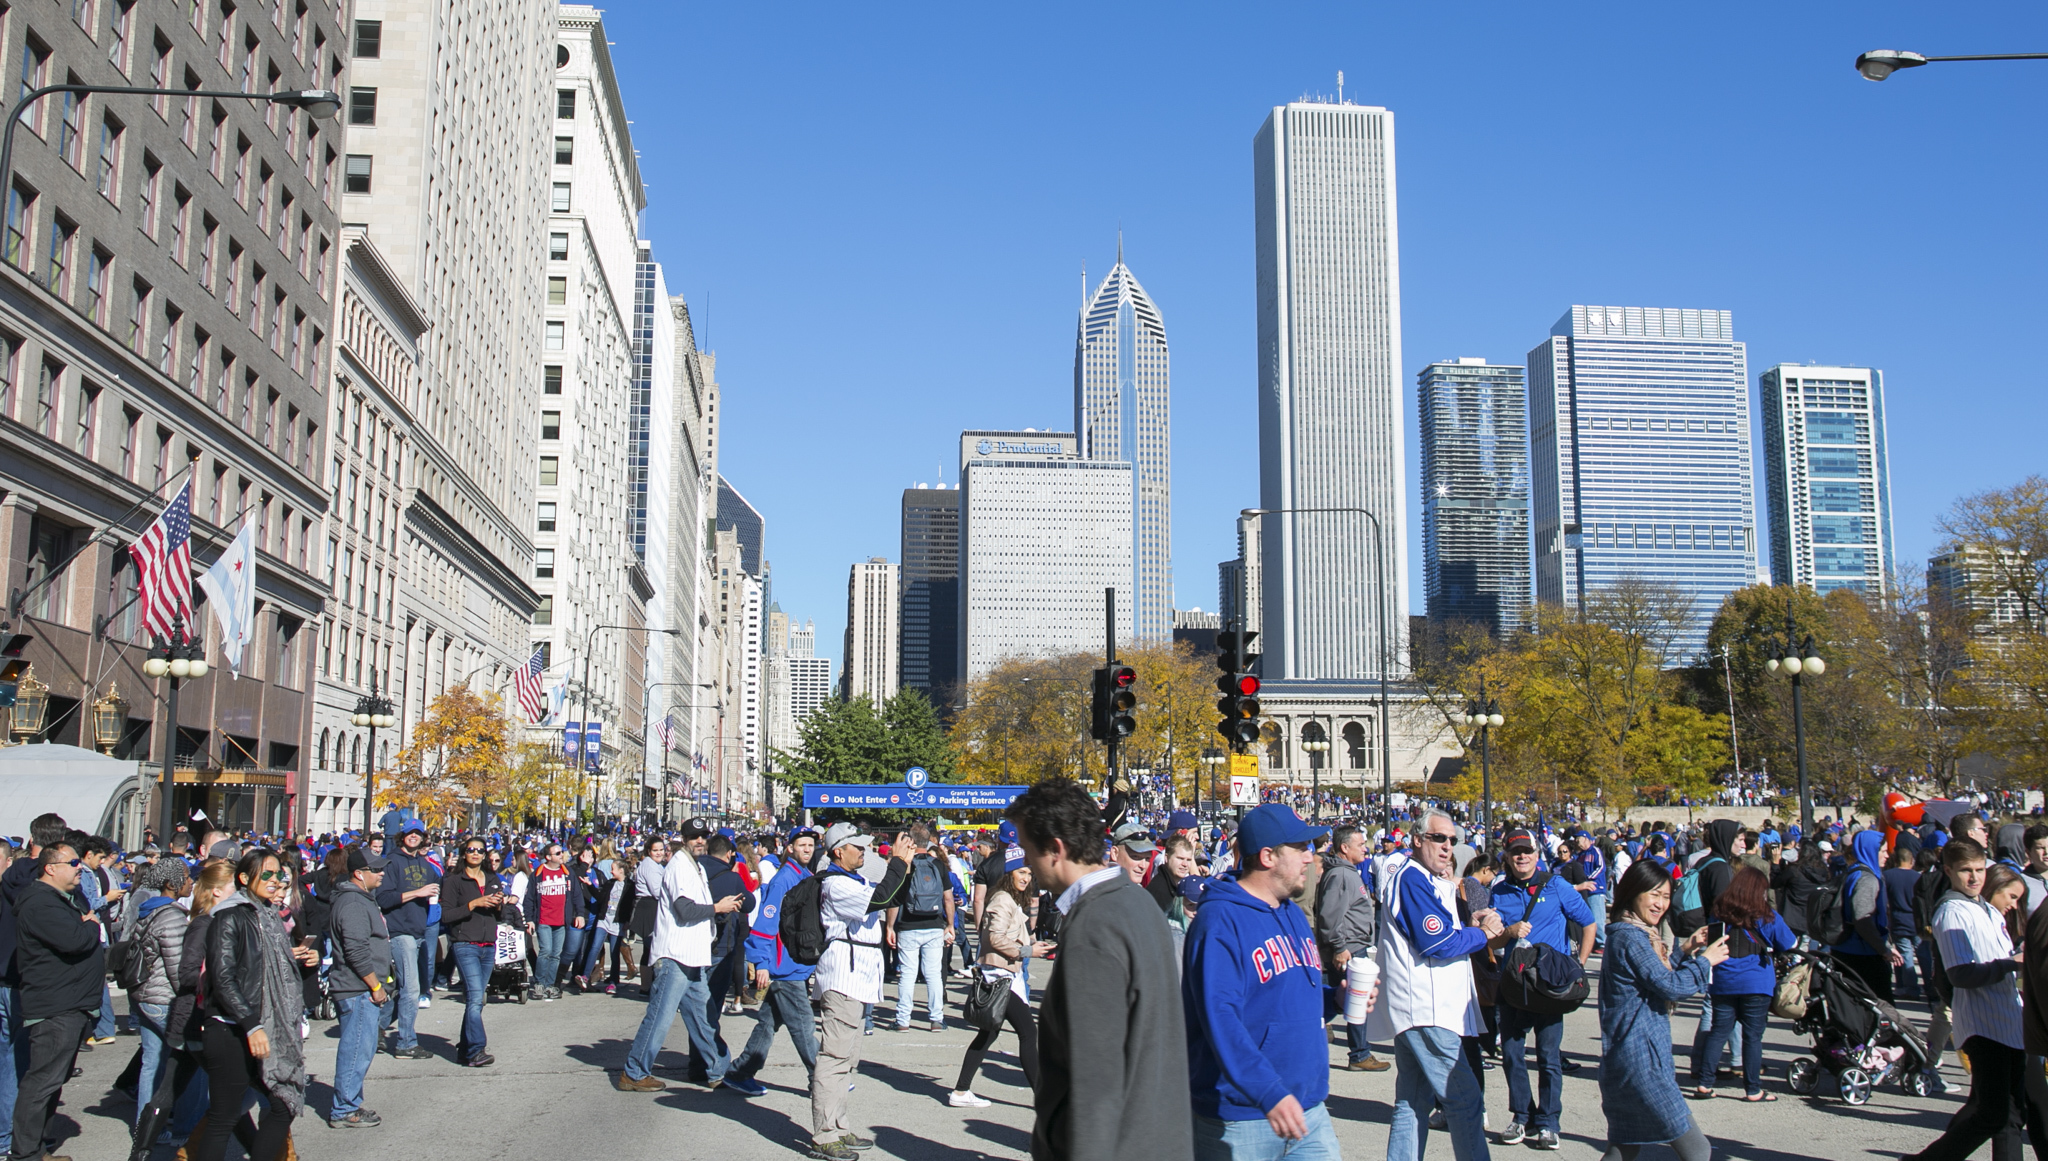 Photos from the Cubs World Series championship parade and rally